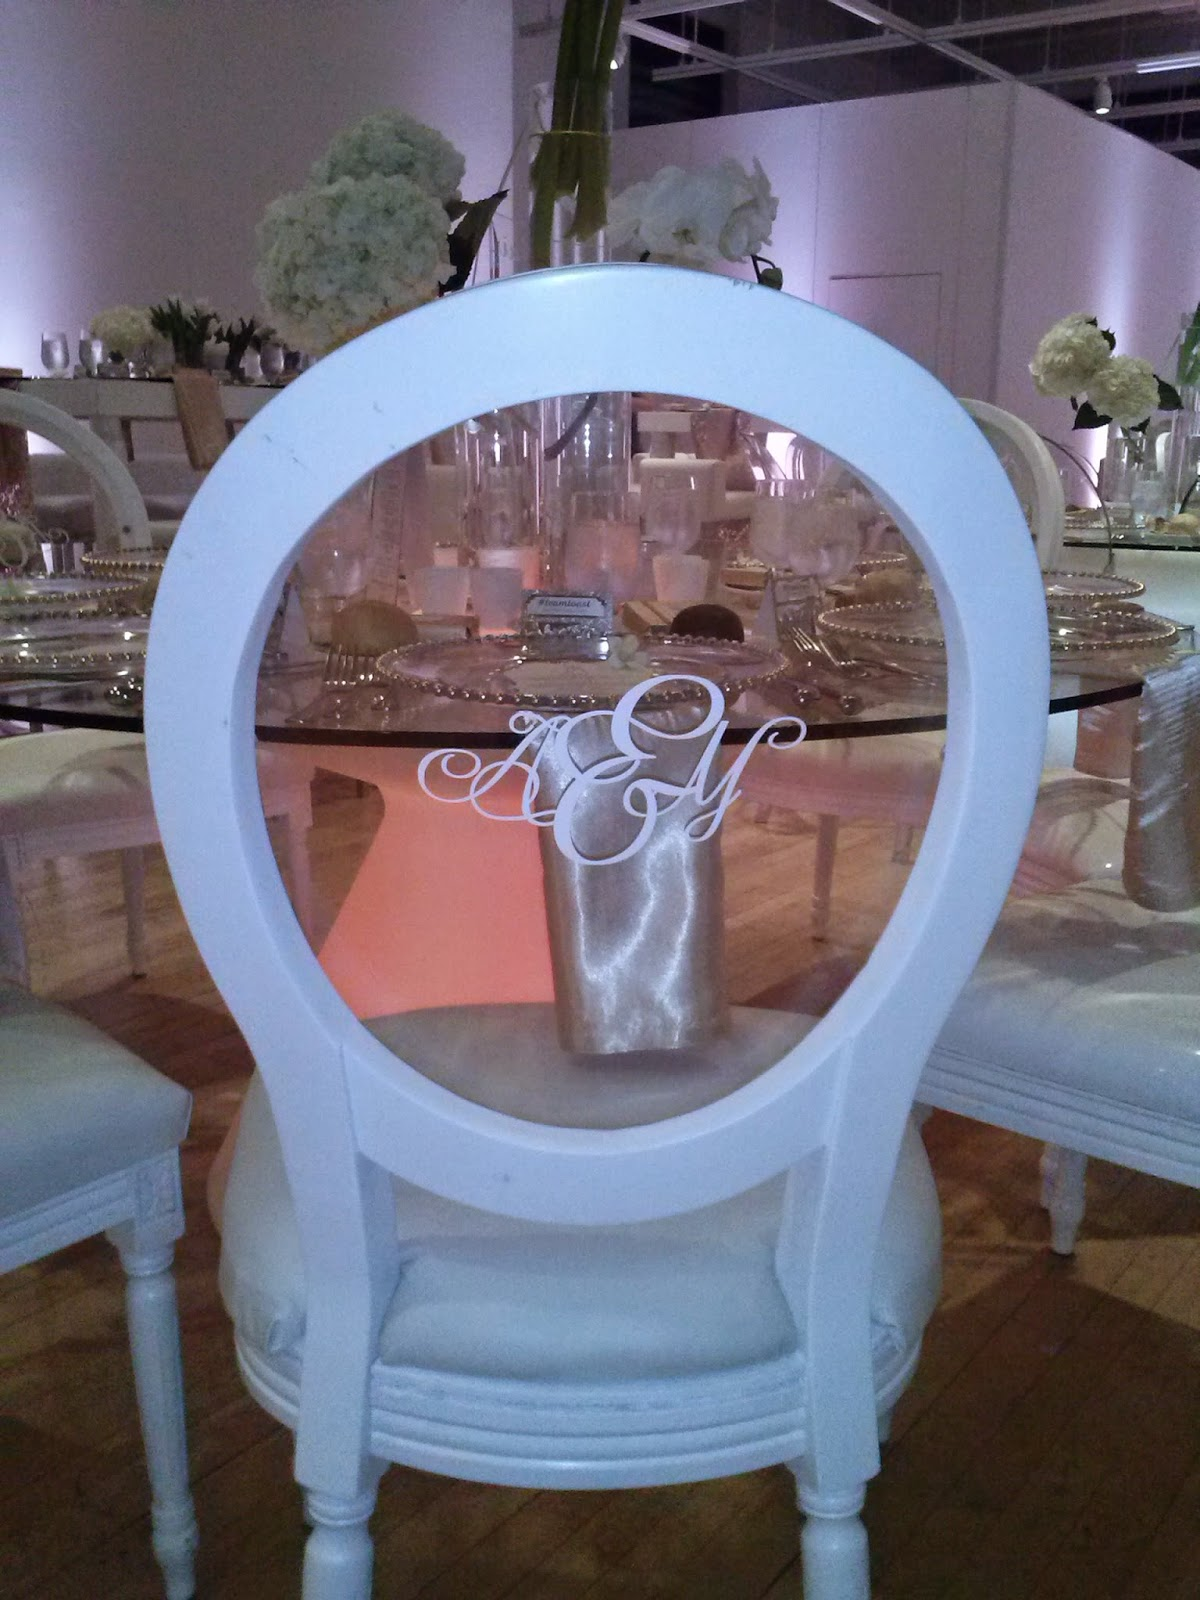 Monogram on ghost chair